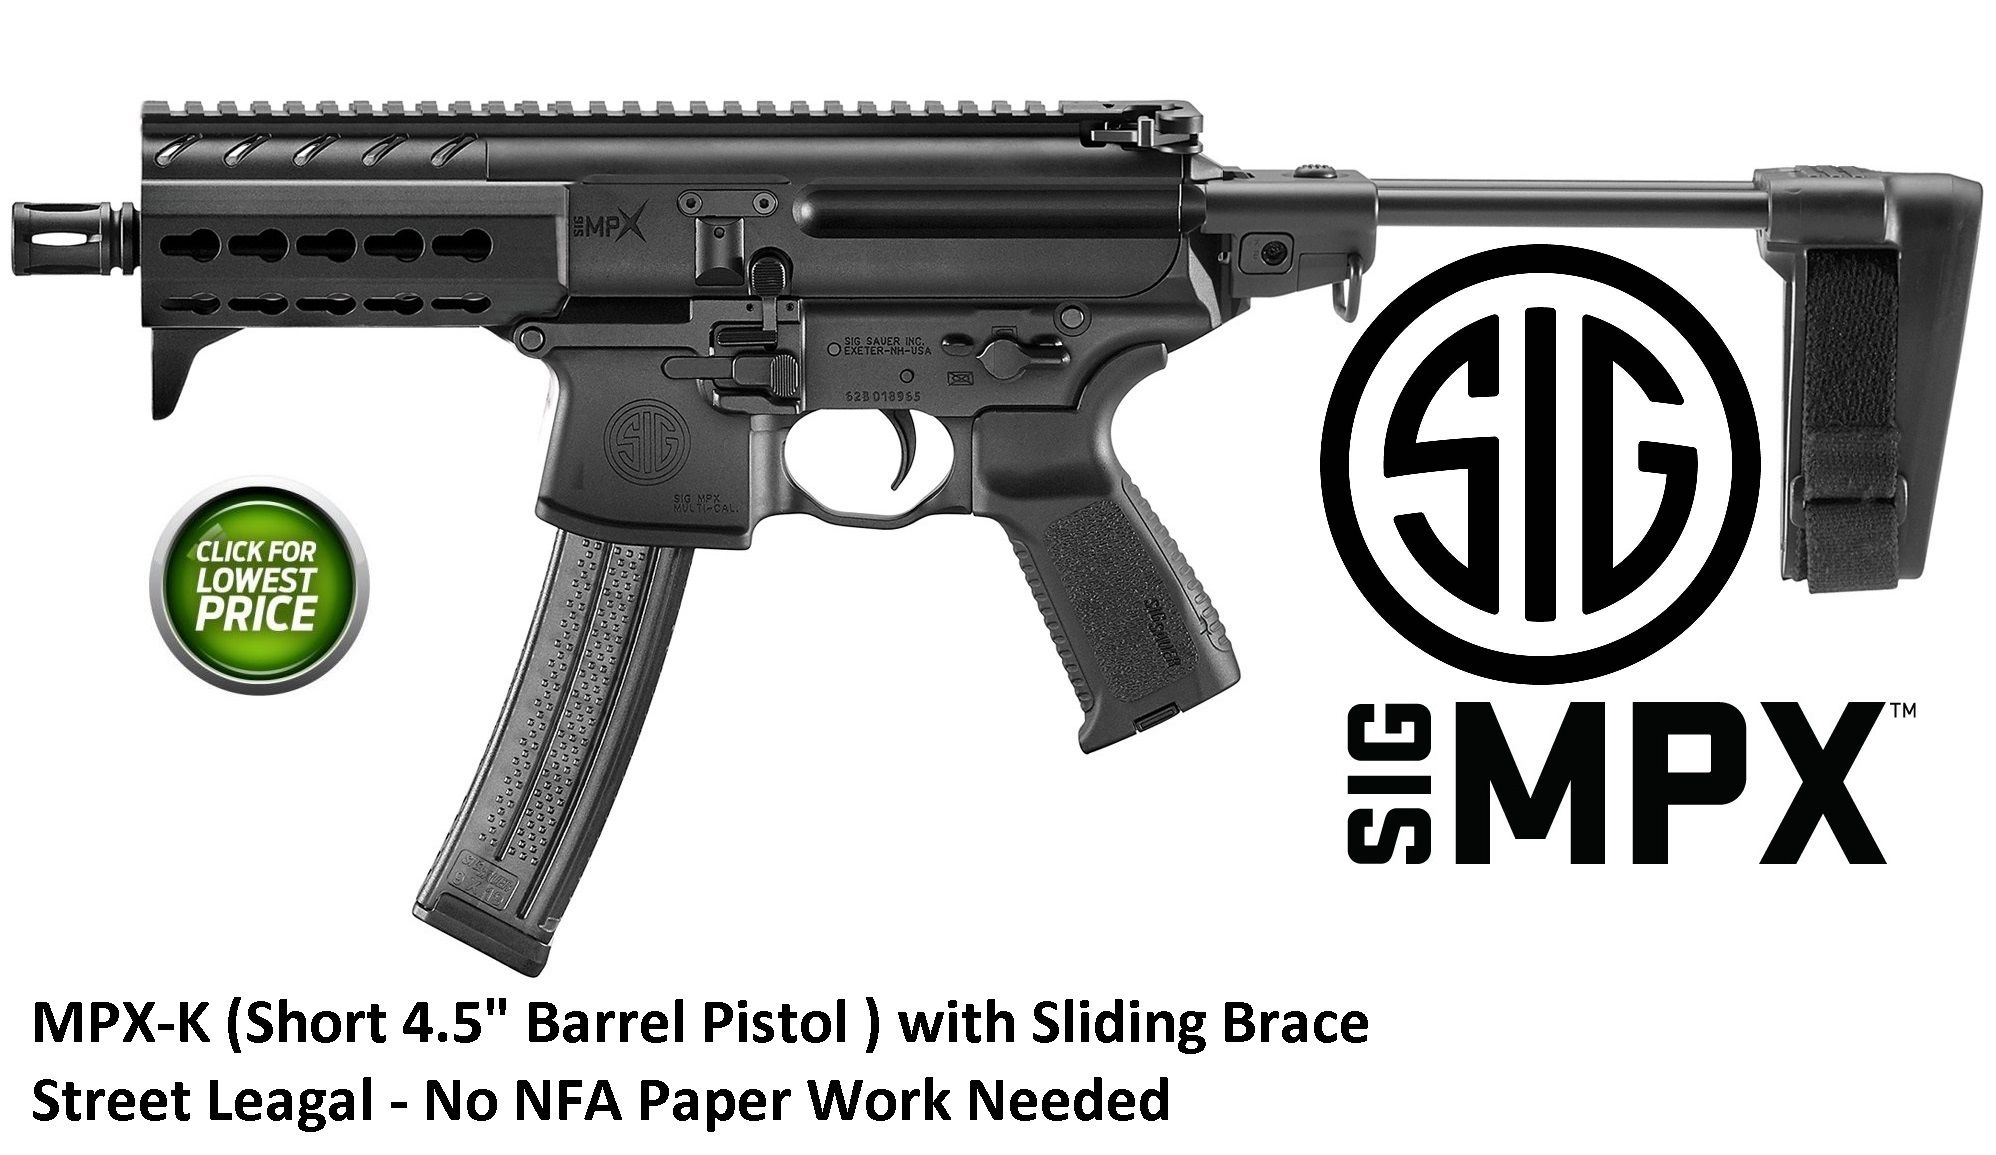 Pin by Fountain Firearms on Sig Firearms | Hand guns, Sig sauer, Sig mpx